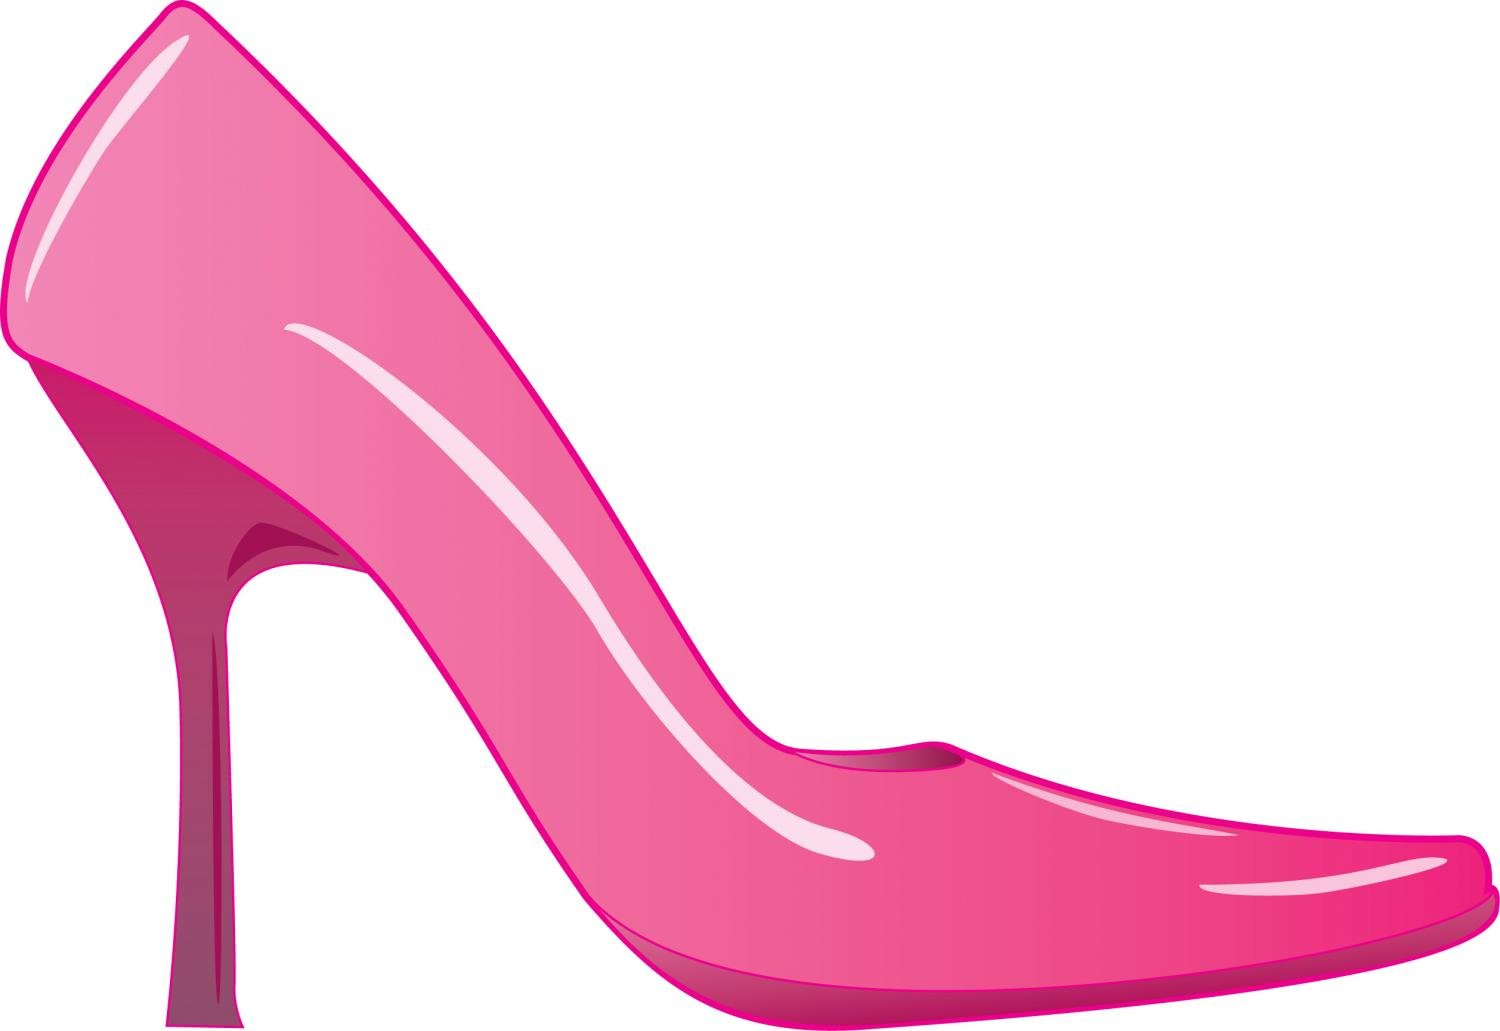 Wallmonkeys High Heels Wall Decal Peel and Stick Graphic WM182730 18 in W x 12 in H